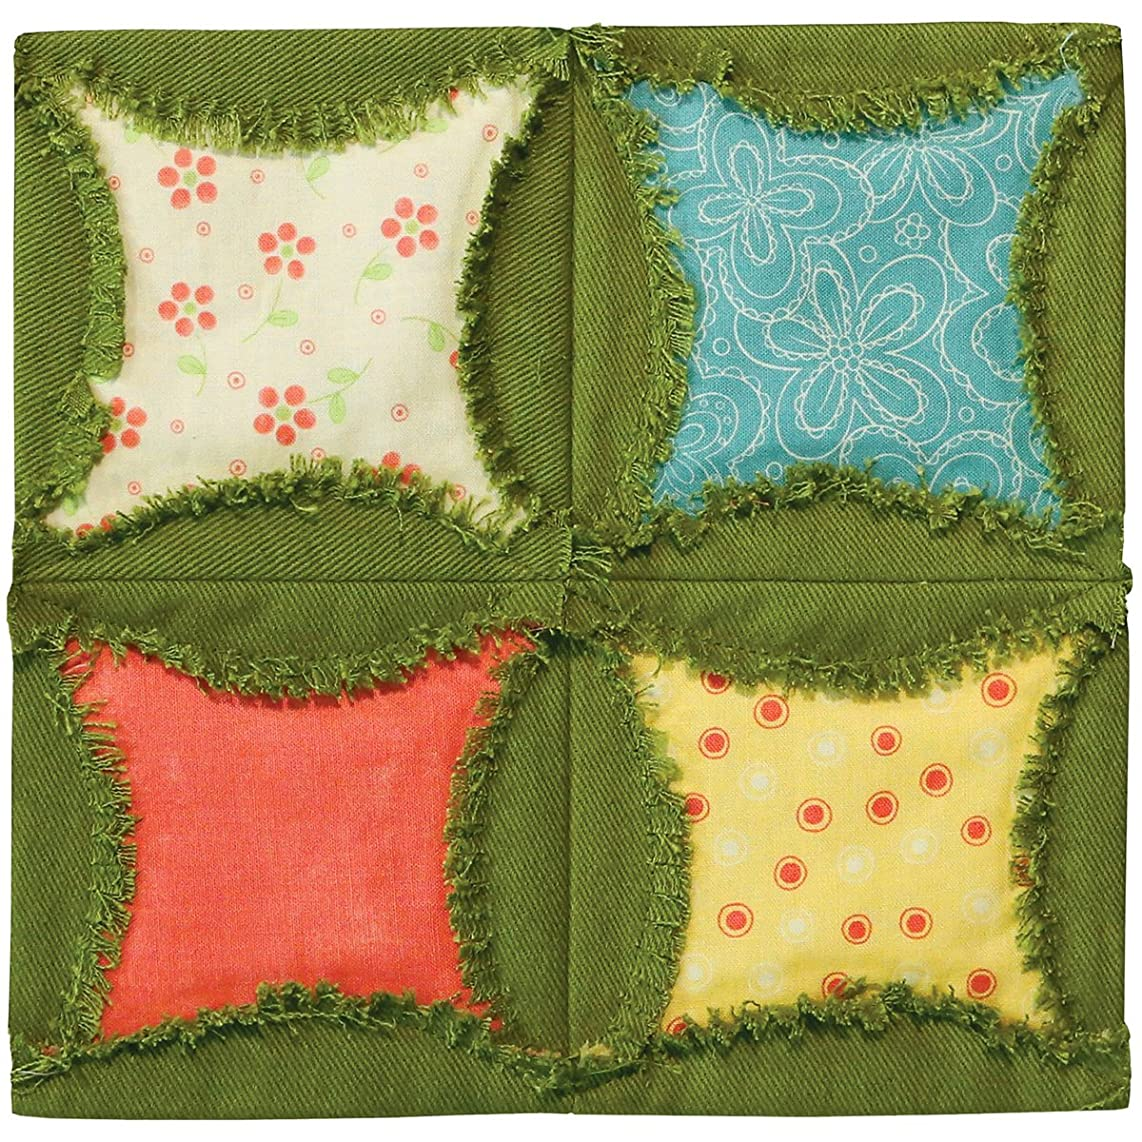 AccuQuilt GO! Fabric Cutting Dies, 6.5-Inch, Rag Circle by Heather Banks